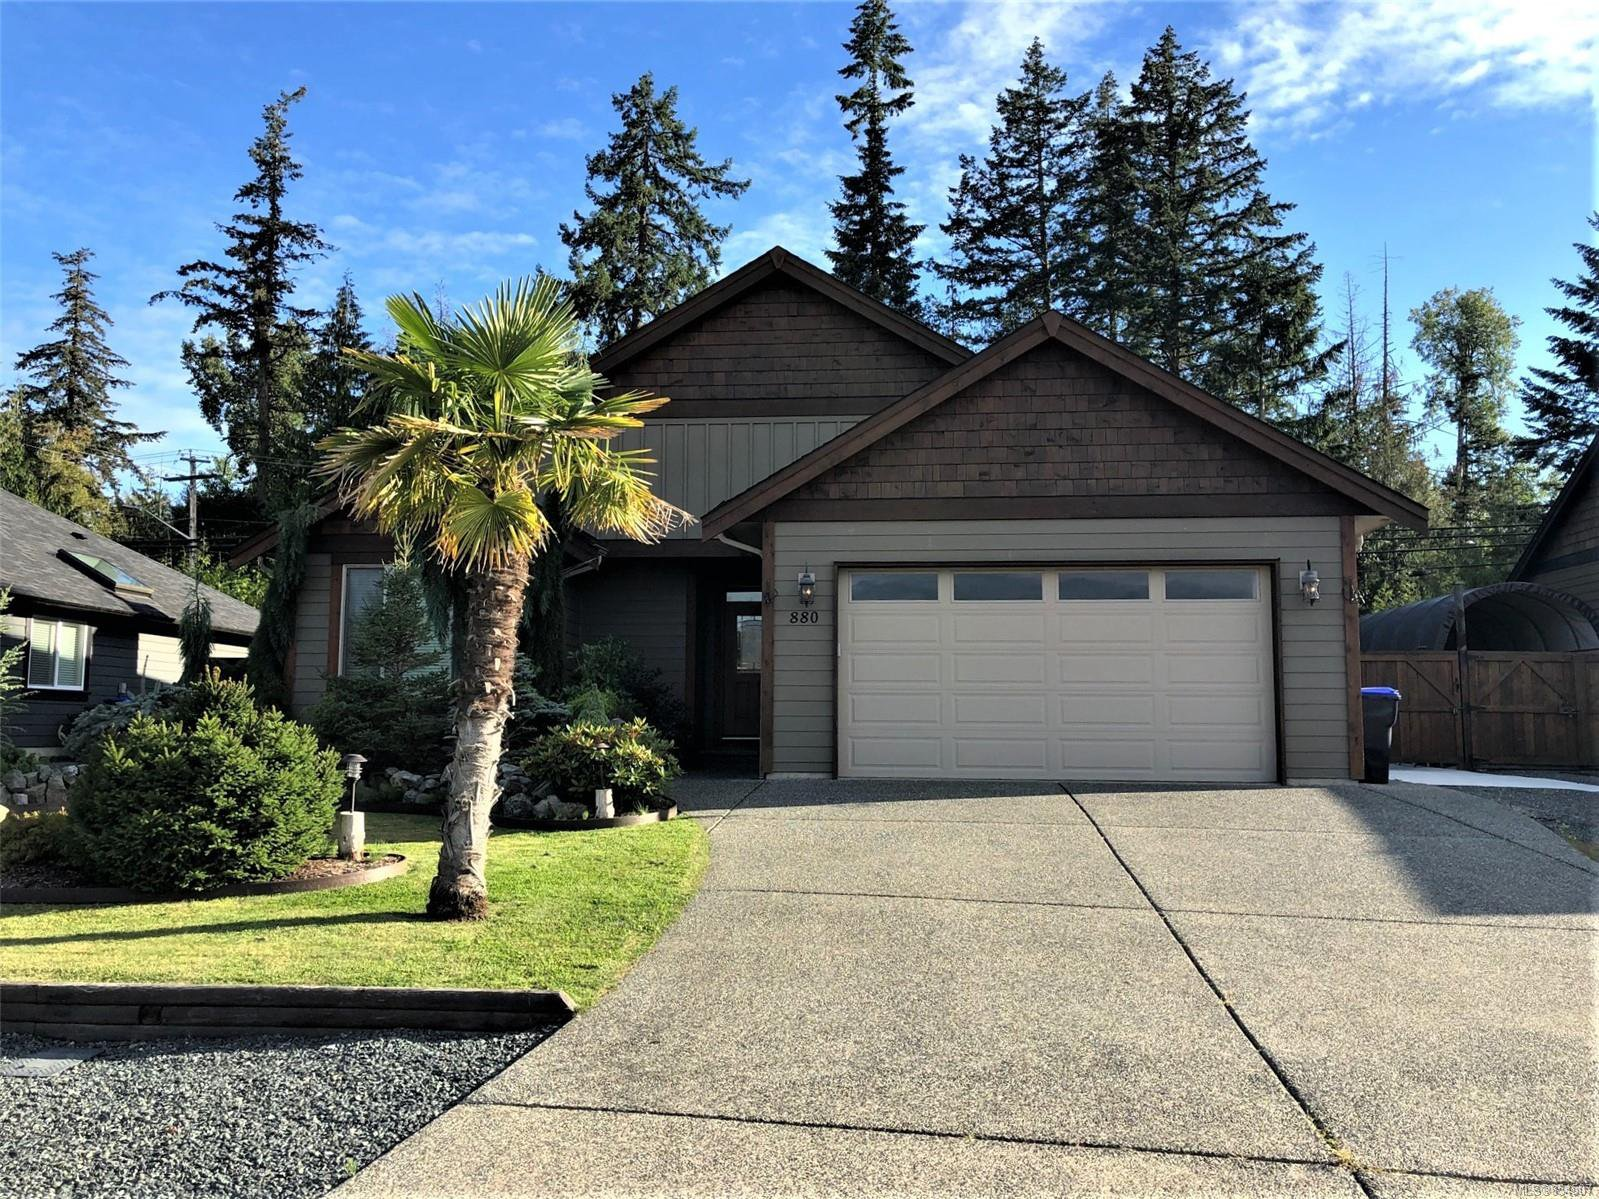 Main Photo: 880 BOUMAN Rd in : PQ Parksville House for sale (Parksville/Qualicum)  : MLS®# 854507